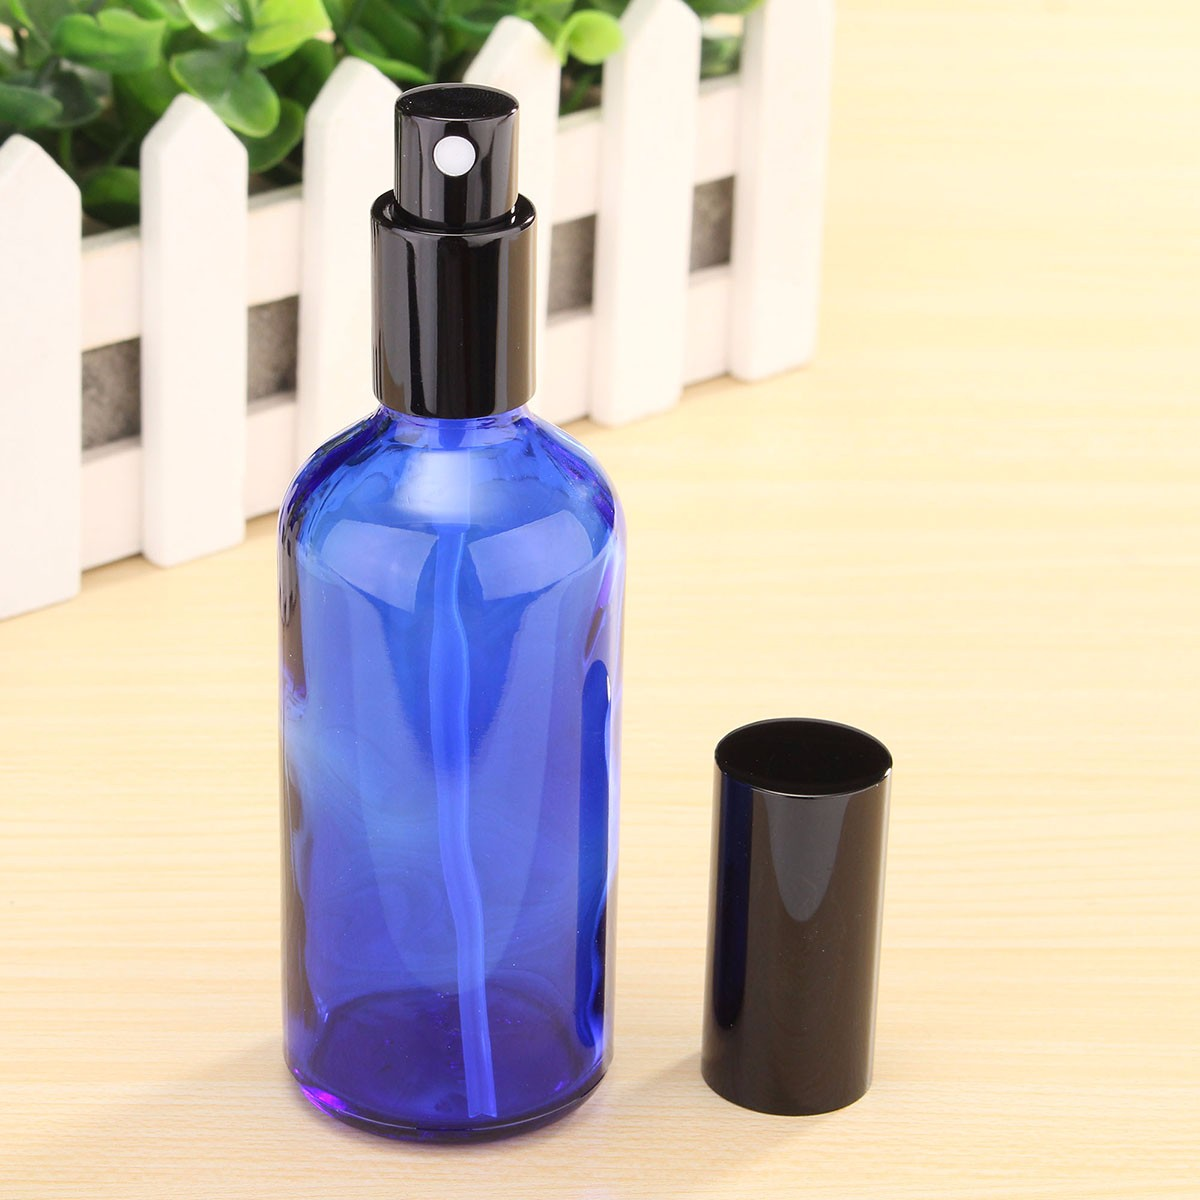 100ml Refillable Blue Glass Spray Bottle Perfume Essential Oils with Dropper/Pipette/Atomiser Cap